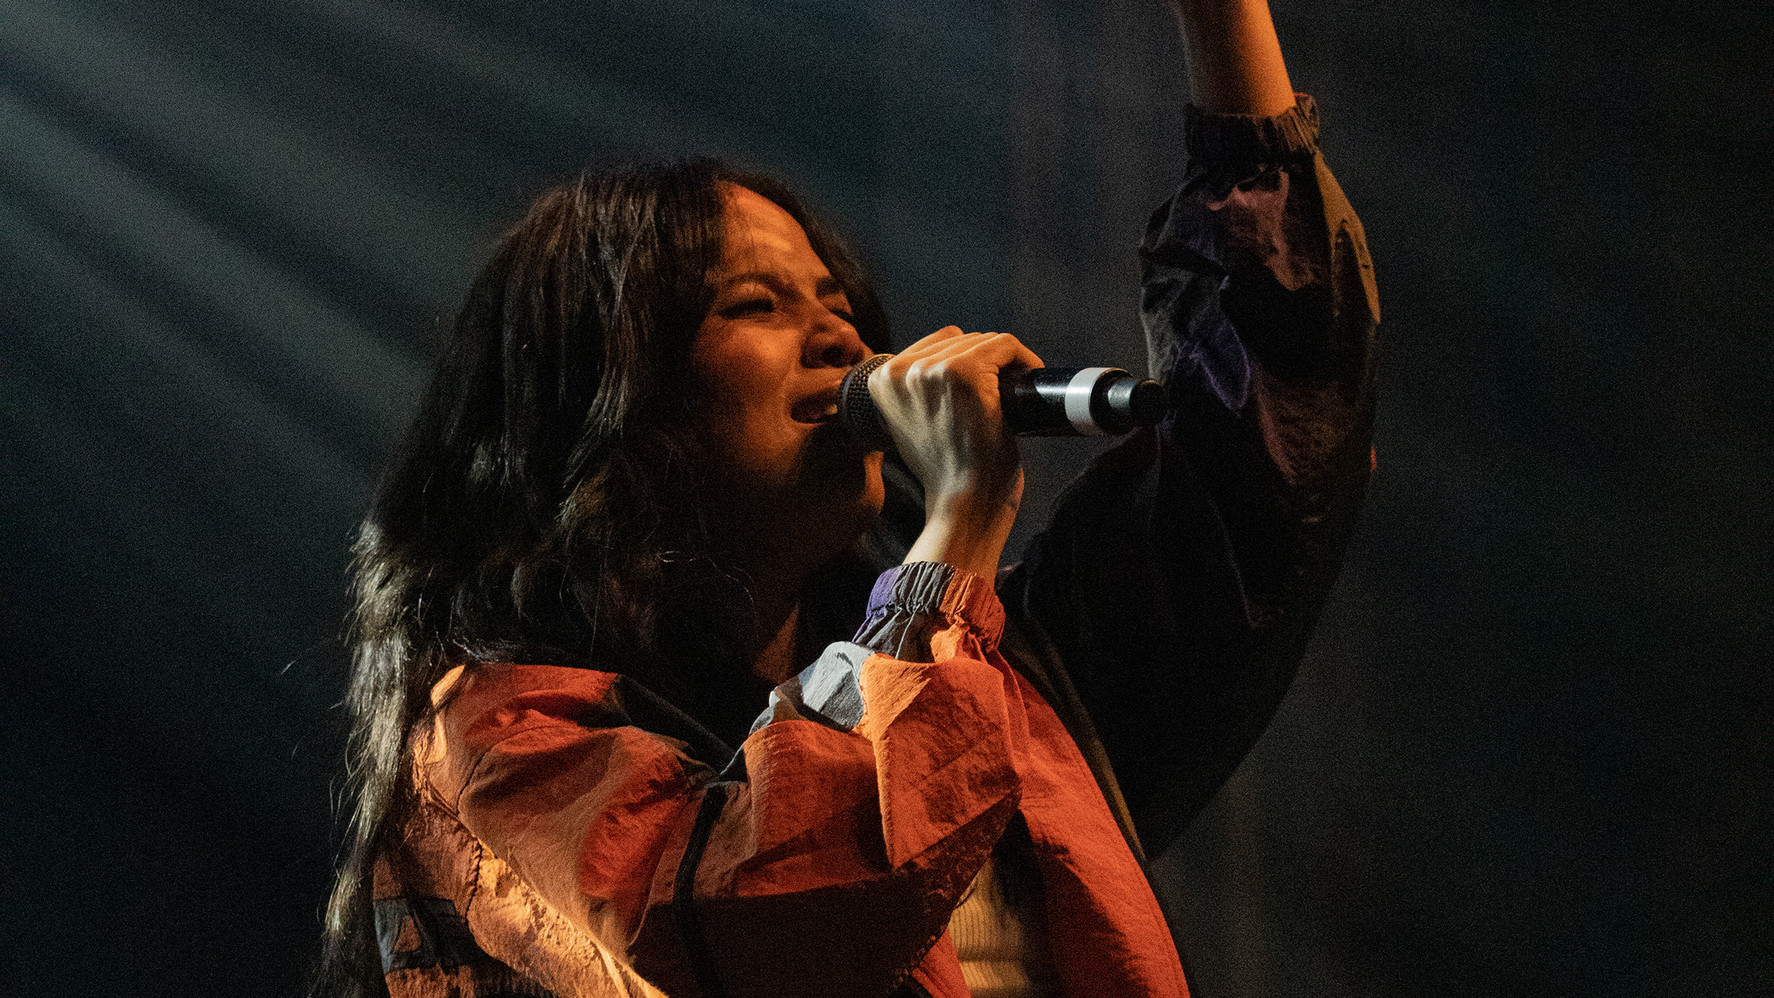 12.2.19 | Snoh Aalegra | Baby Rose | Giveon | Regency Ballroom, SF, CA | Photographer: Jit Grewal | Goldenvoice